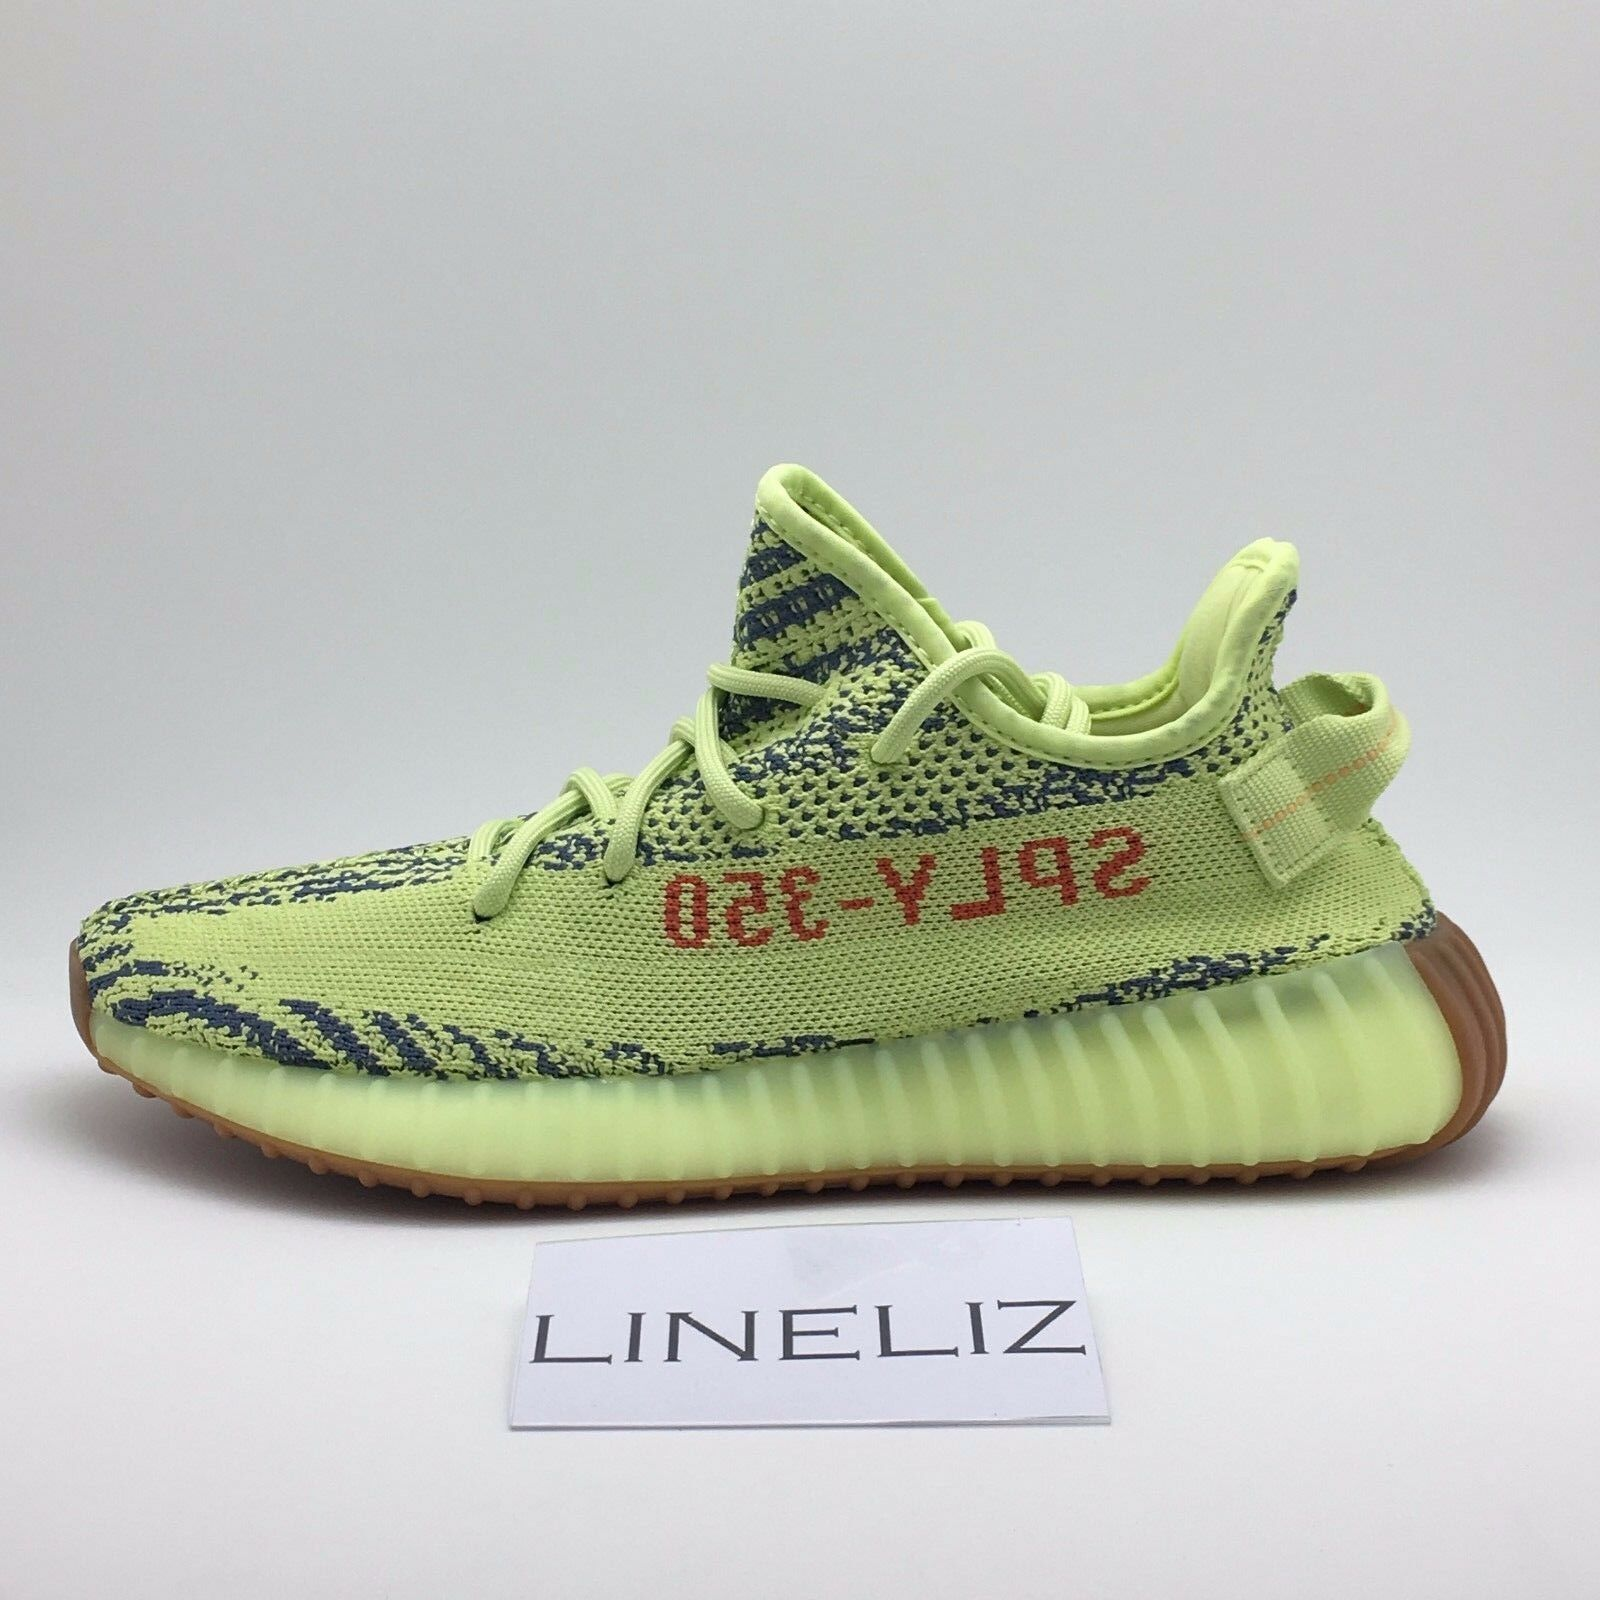 Adidas YEEZY Boost 350 V2 Semi Frozen Yellow SIZES UK8 B37572